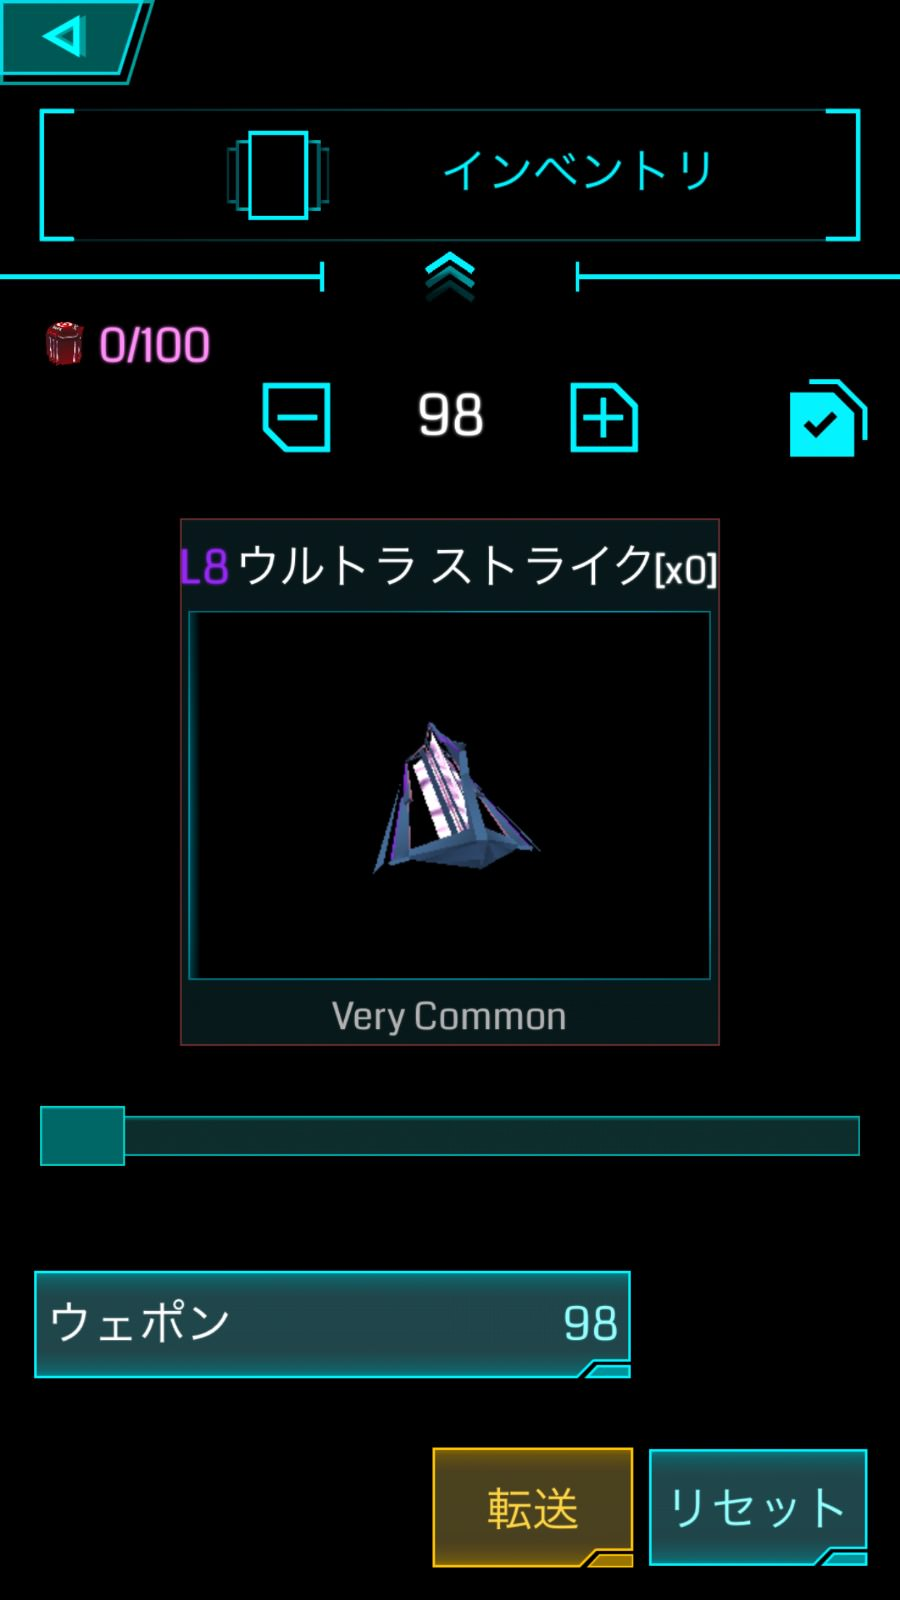 Ingress update IMG 1246